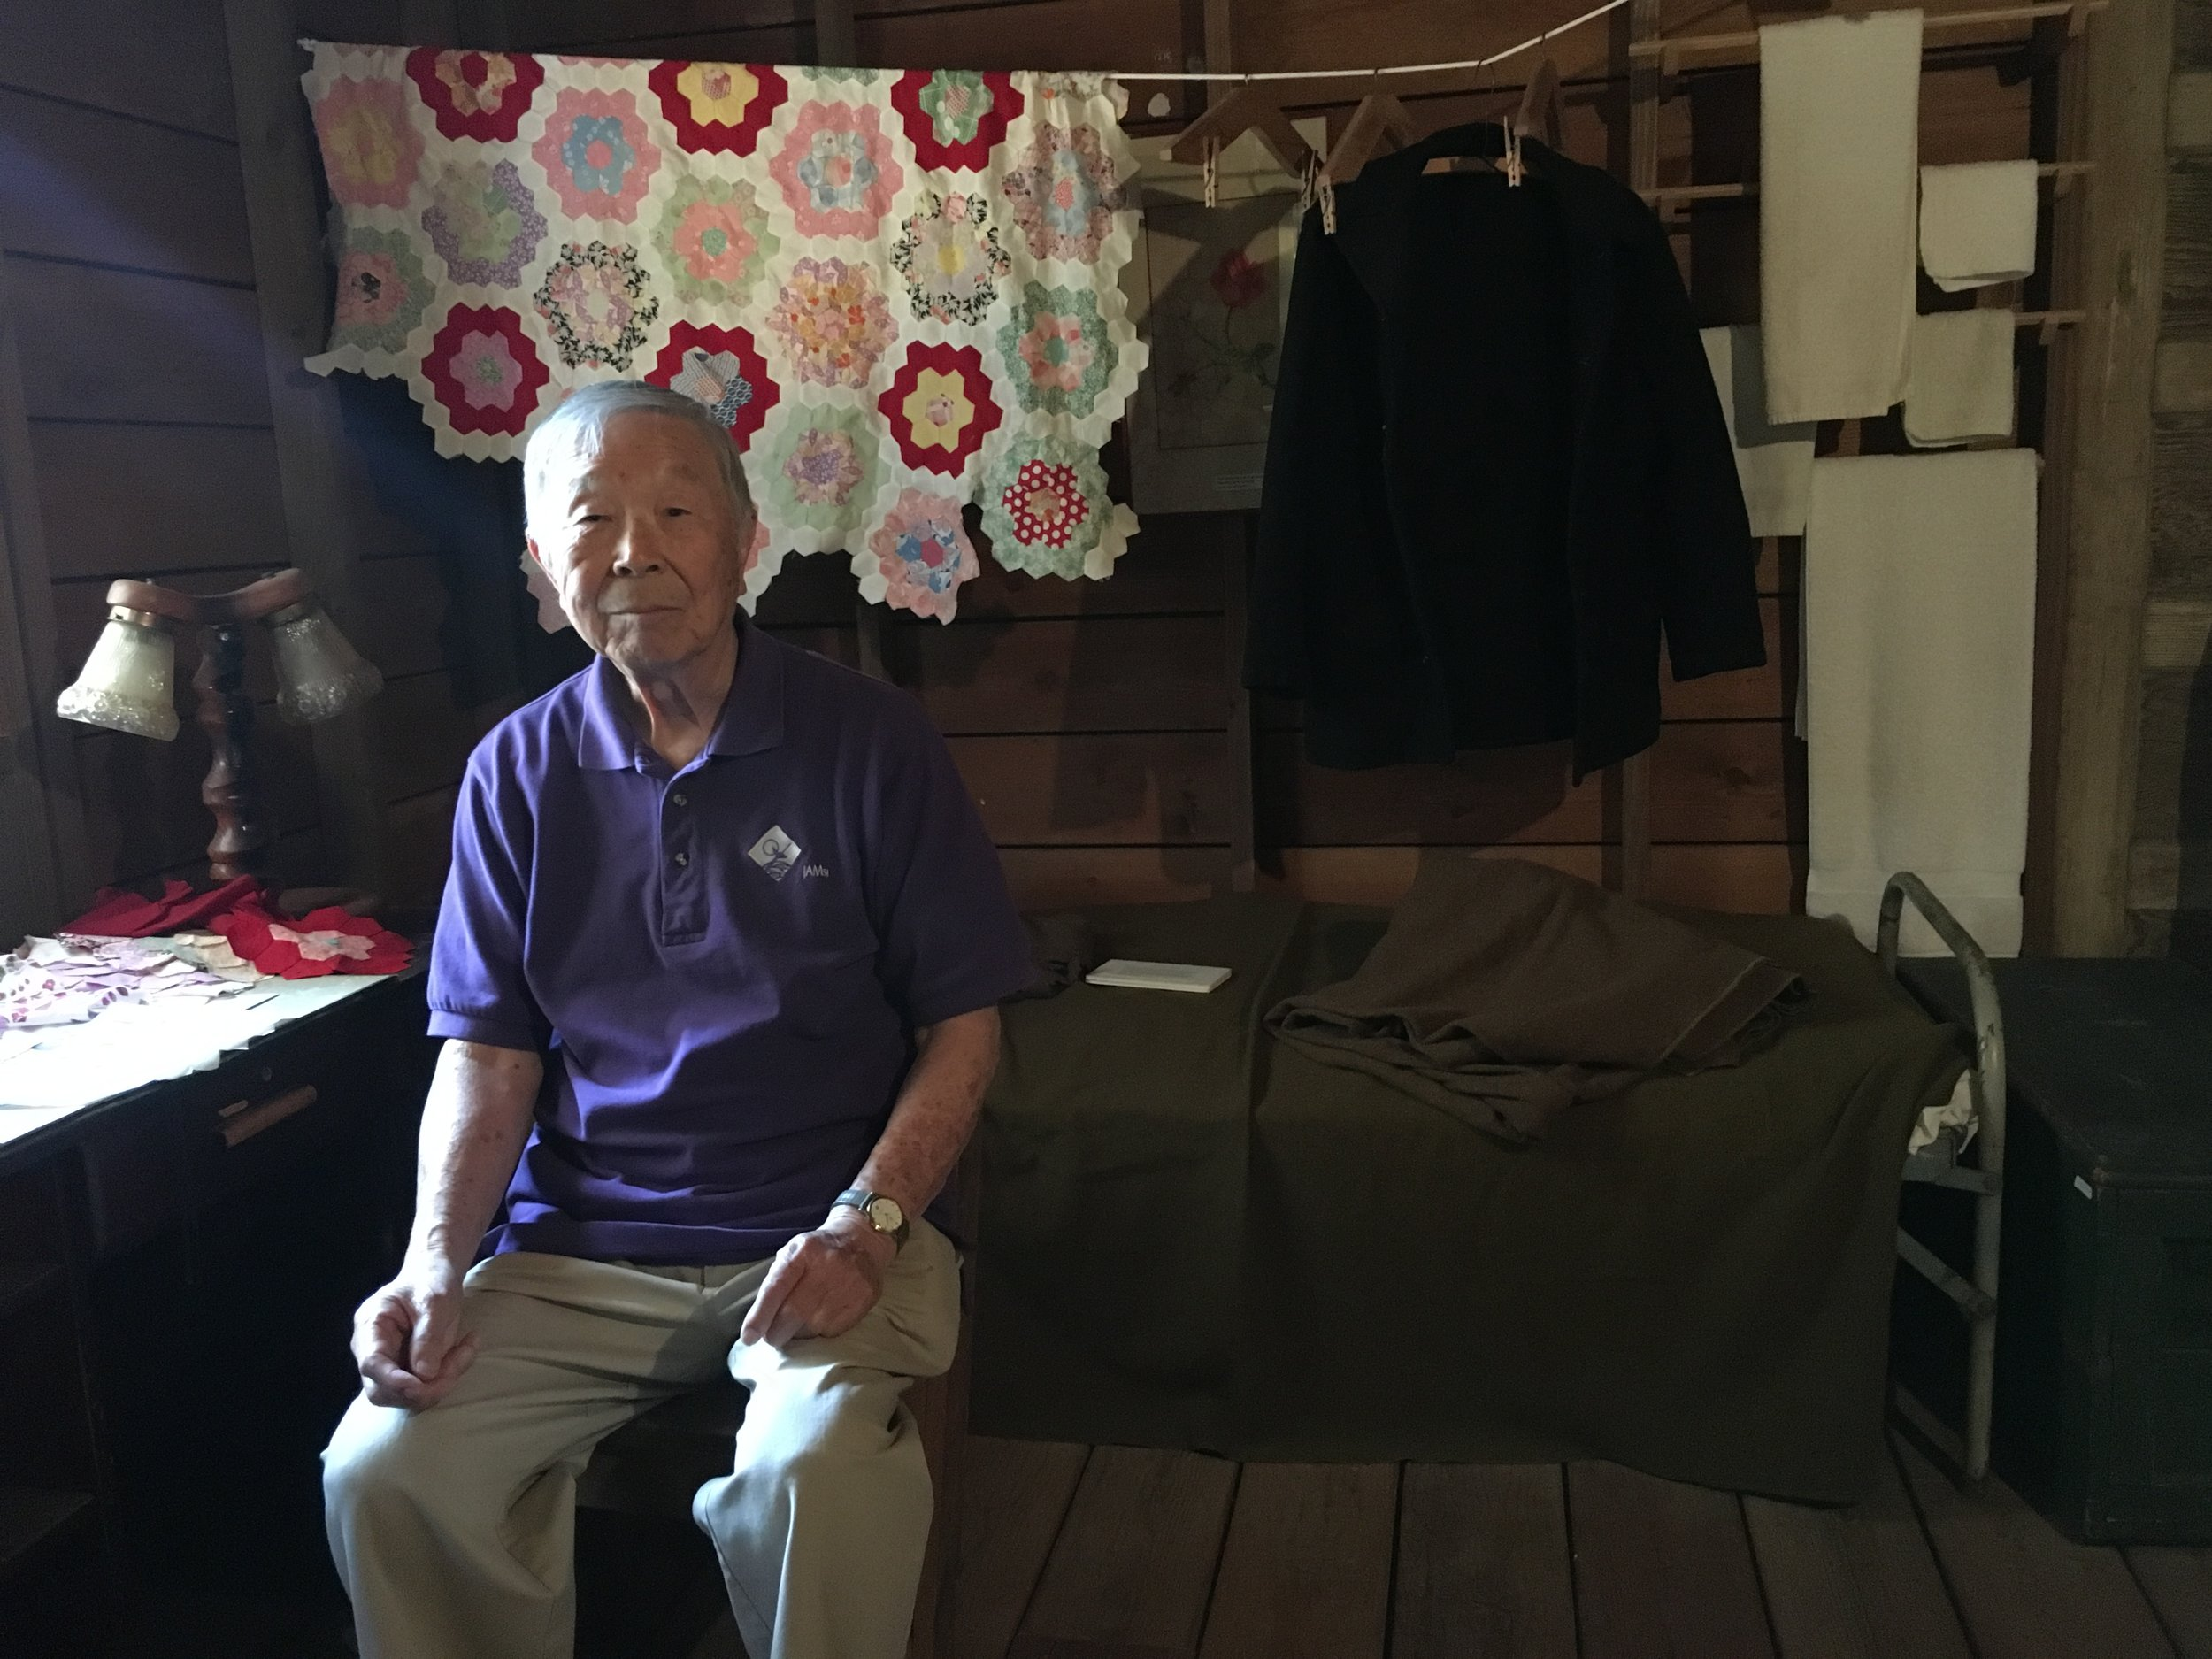 Roy Matsuzaki inside the barrack room replica at the Japanese American Museum of San Jose